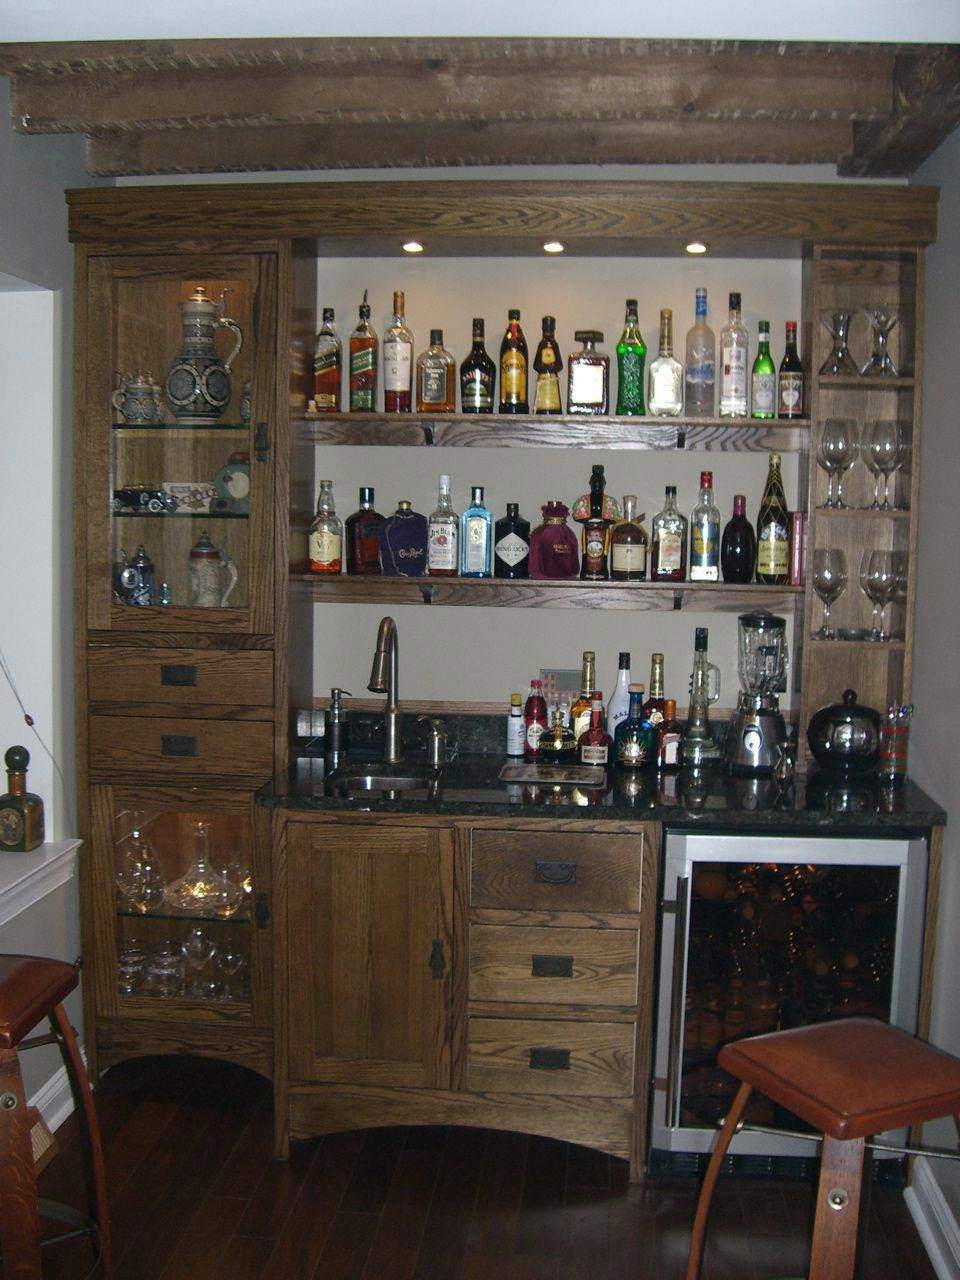 Peachy What Is A Dry Wet Bar Custom Cabinets Millwork Our Work Chesterfield Custom Homes By Spirk Brors What Is A Wet Bar Rough houzz 01 What Is A Wet Bar